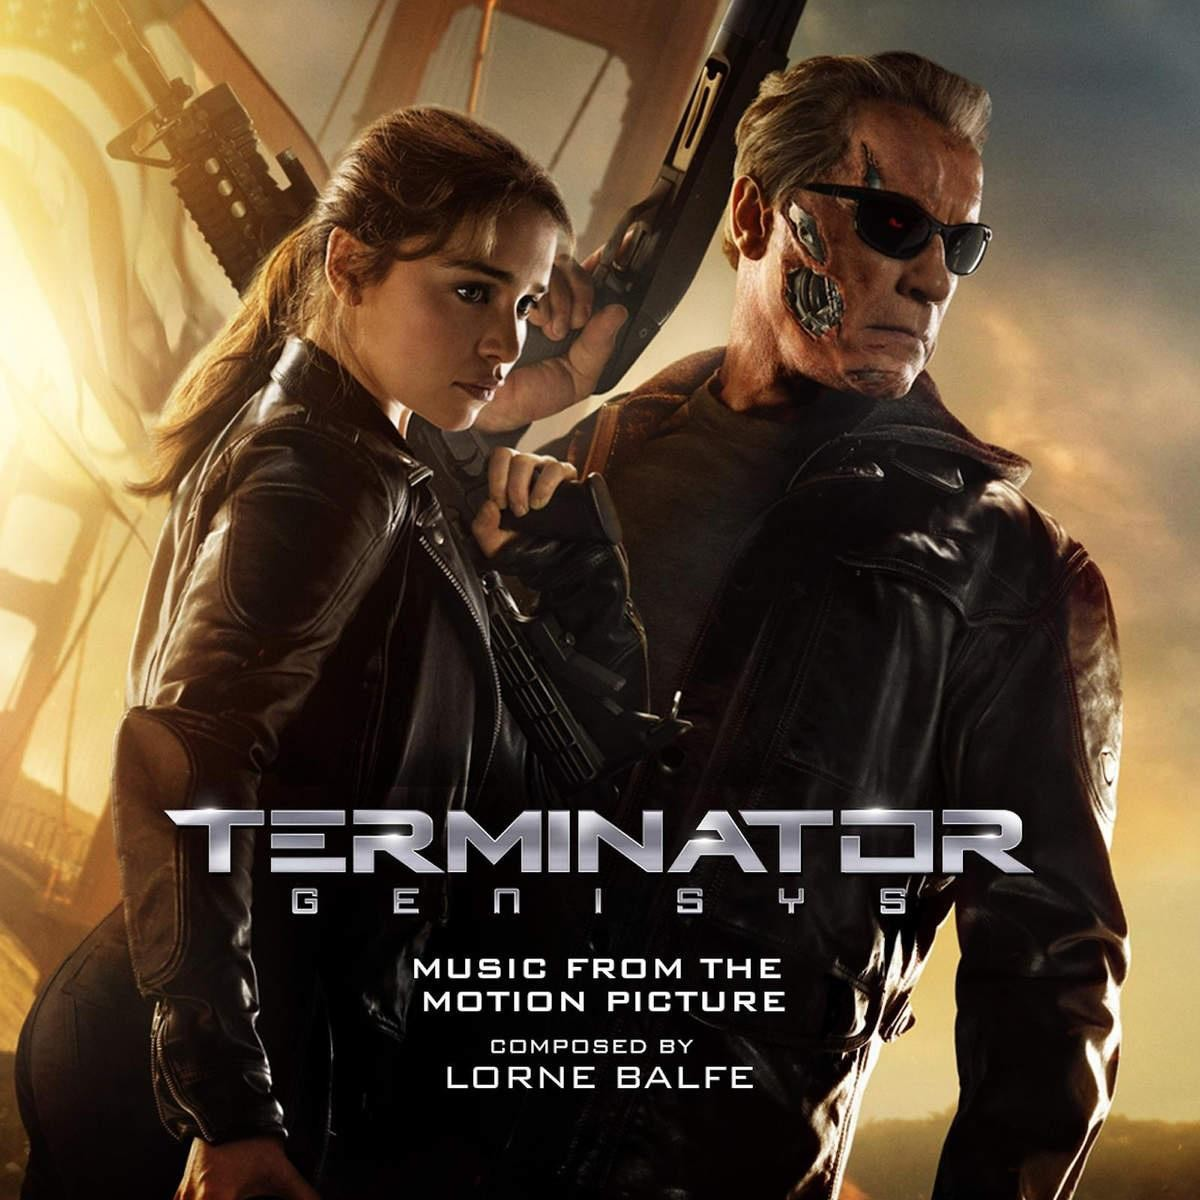 Terminator Genisys (Music from the Motion Picture) 终结者:创世纪 原声带